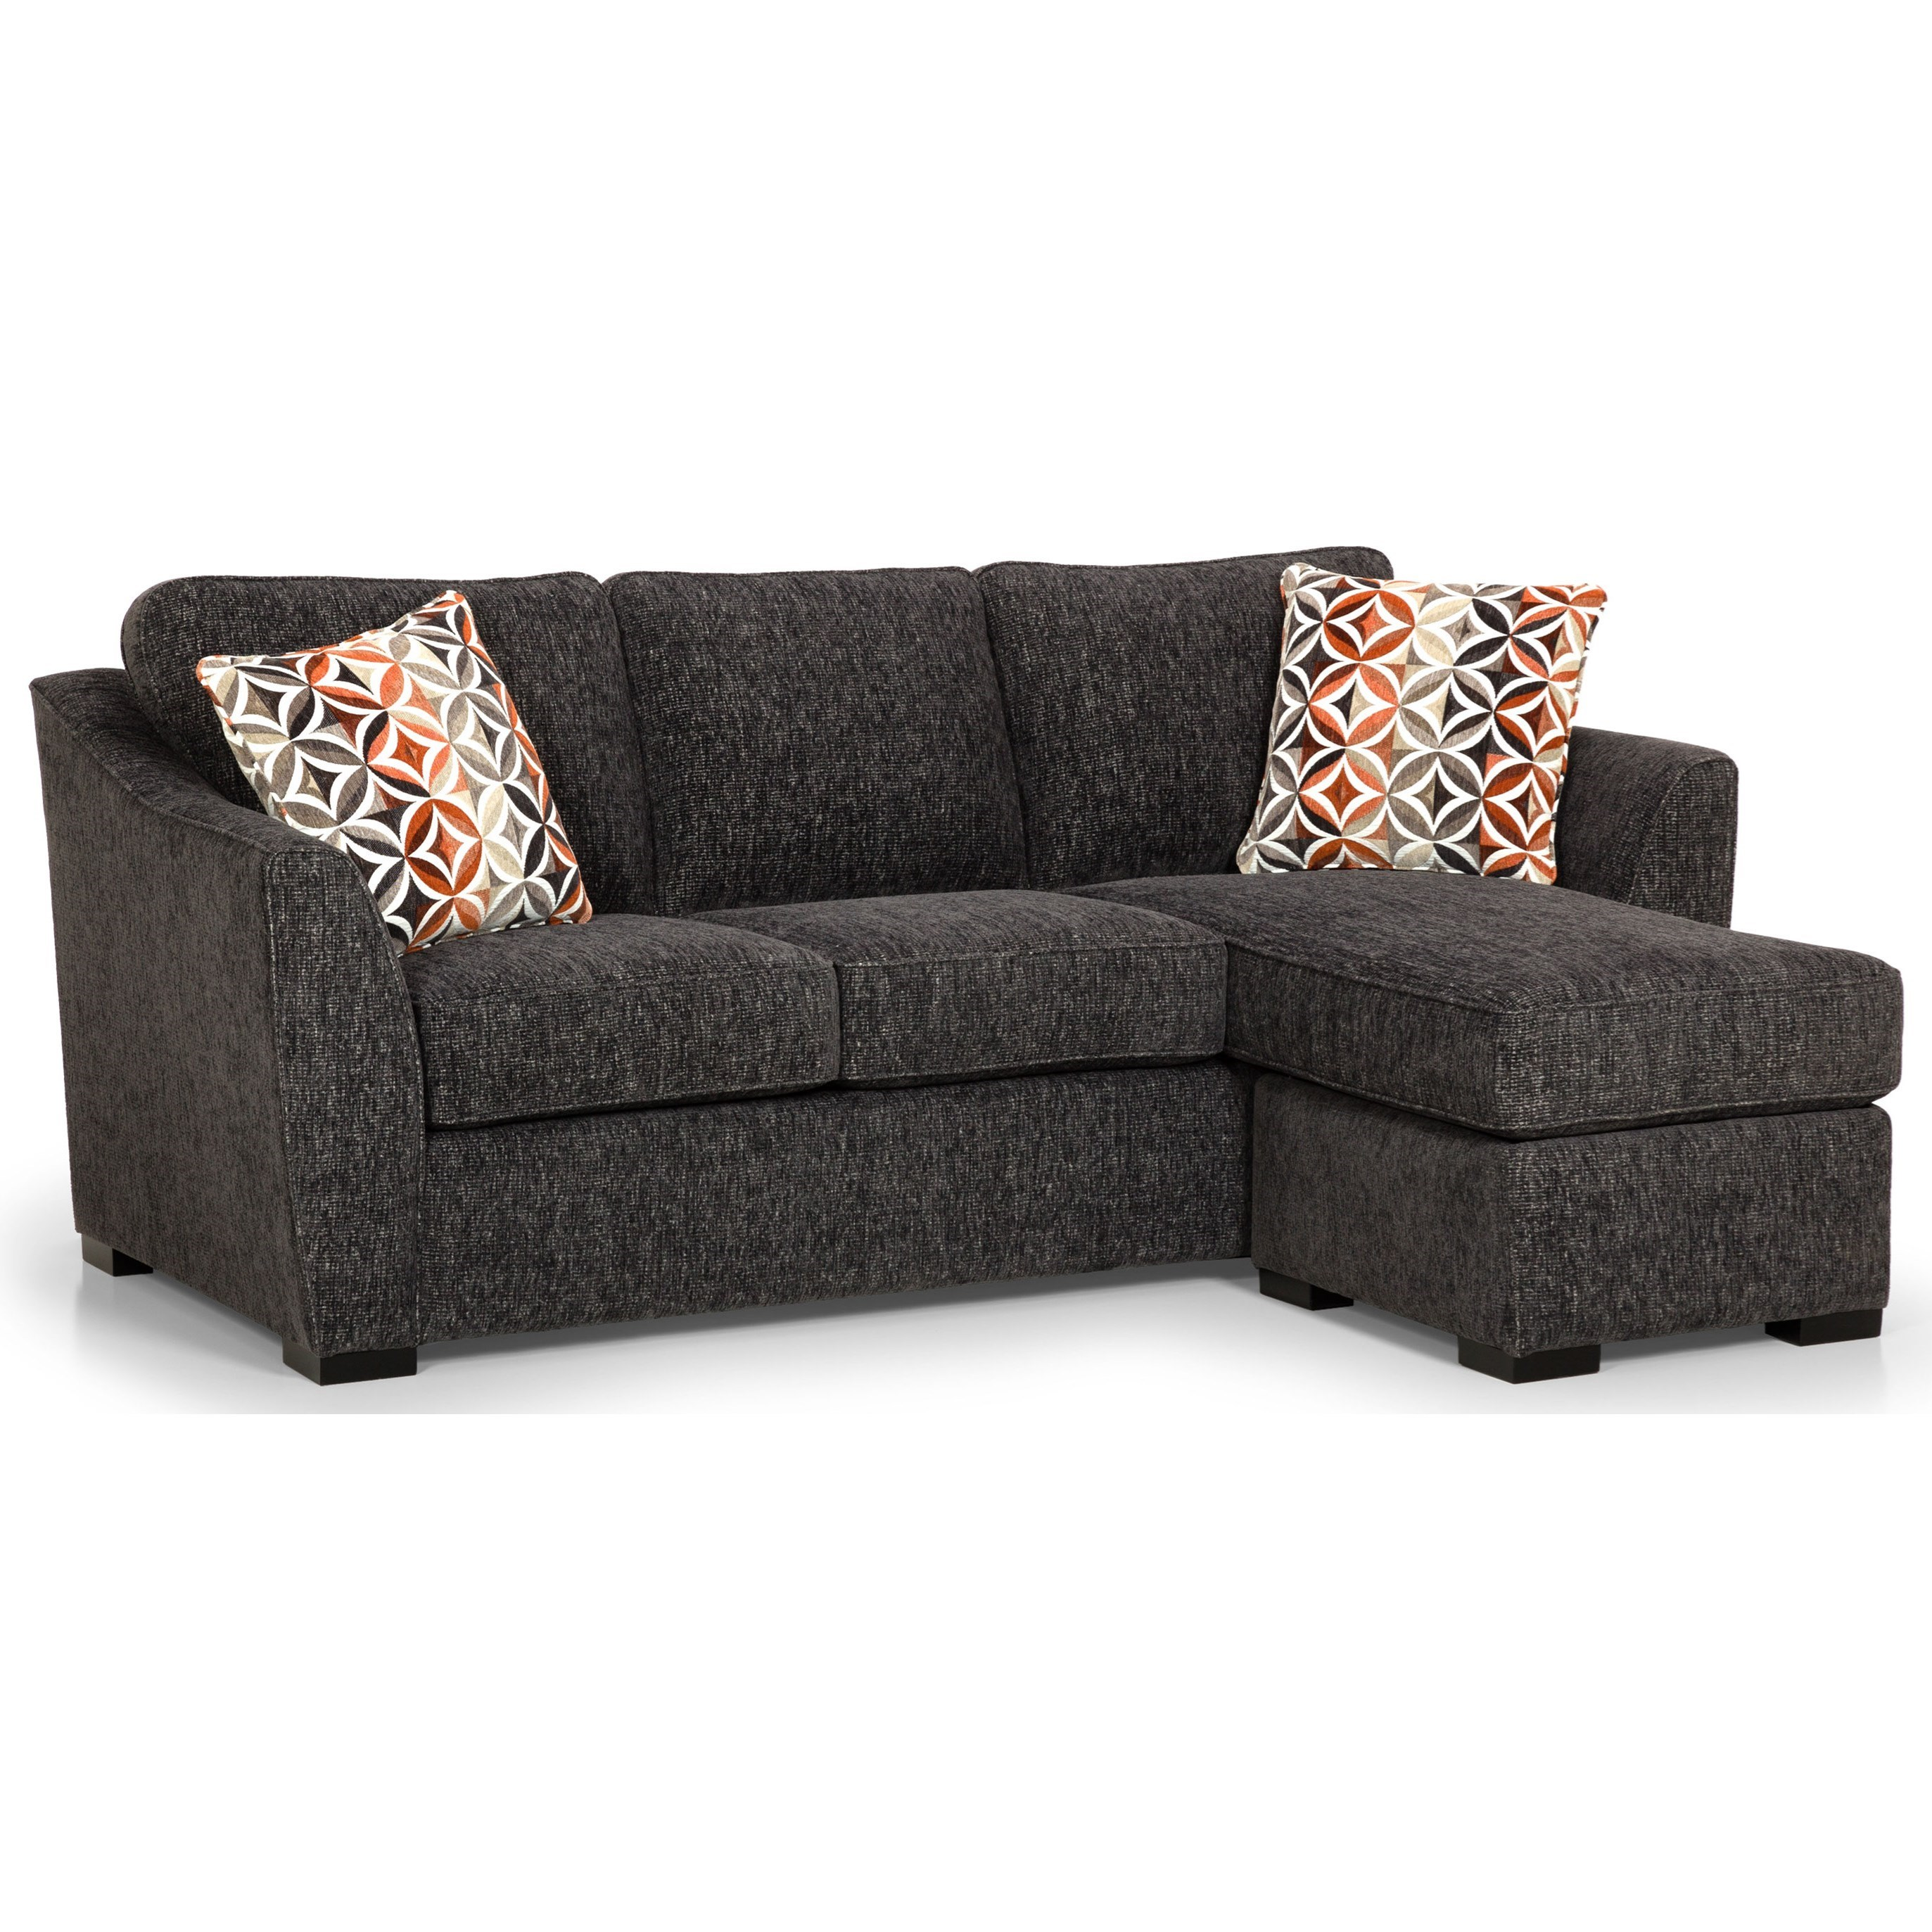 384 Sofa Chaise by Stanton at Wilson's Furniture